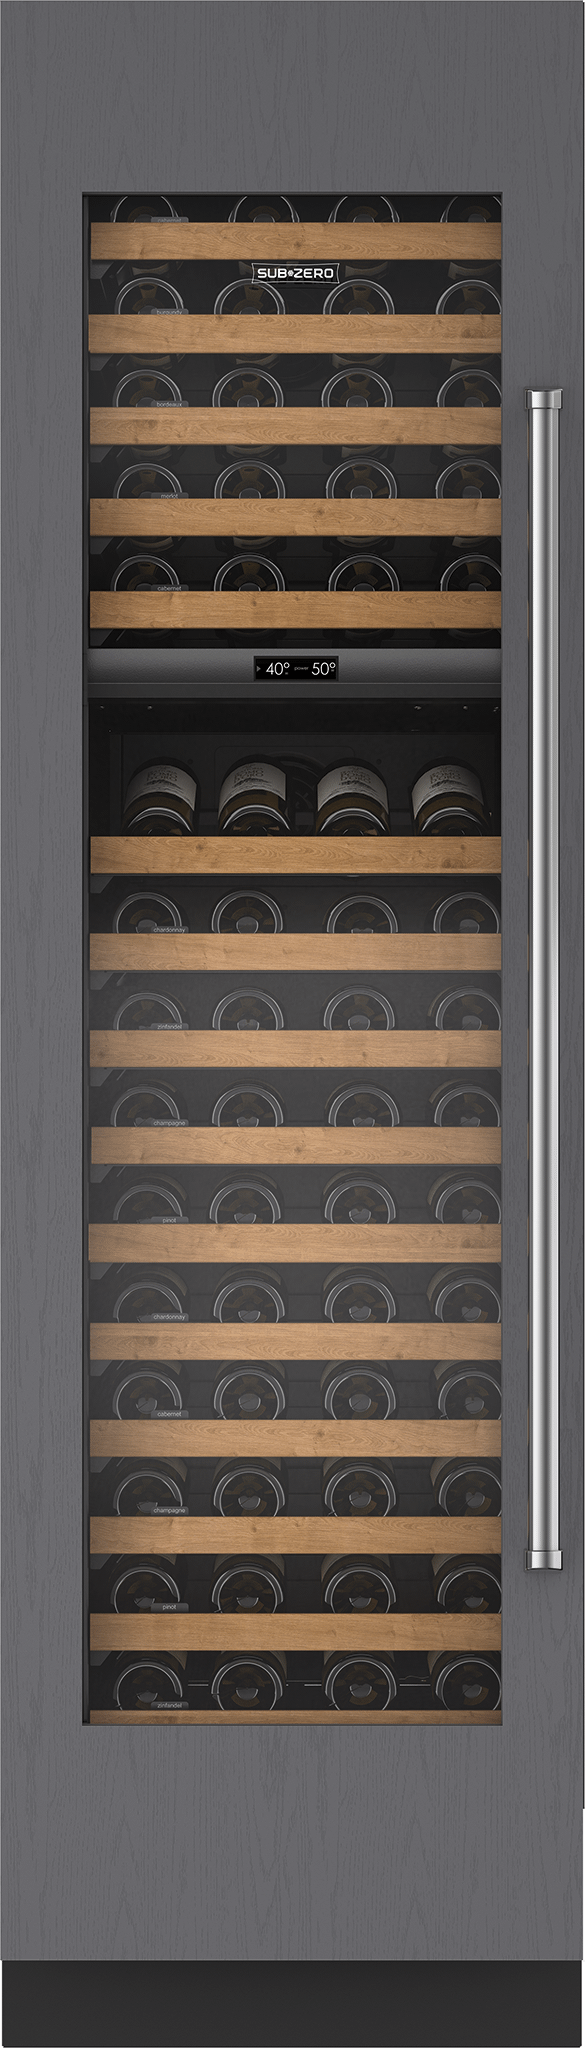 "Subzero24"" Designer Wine Storage - Panel Ready"